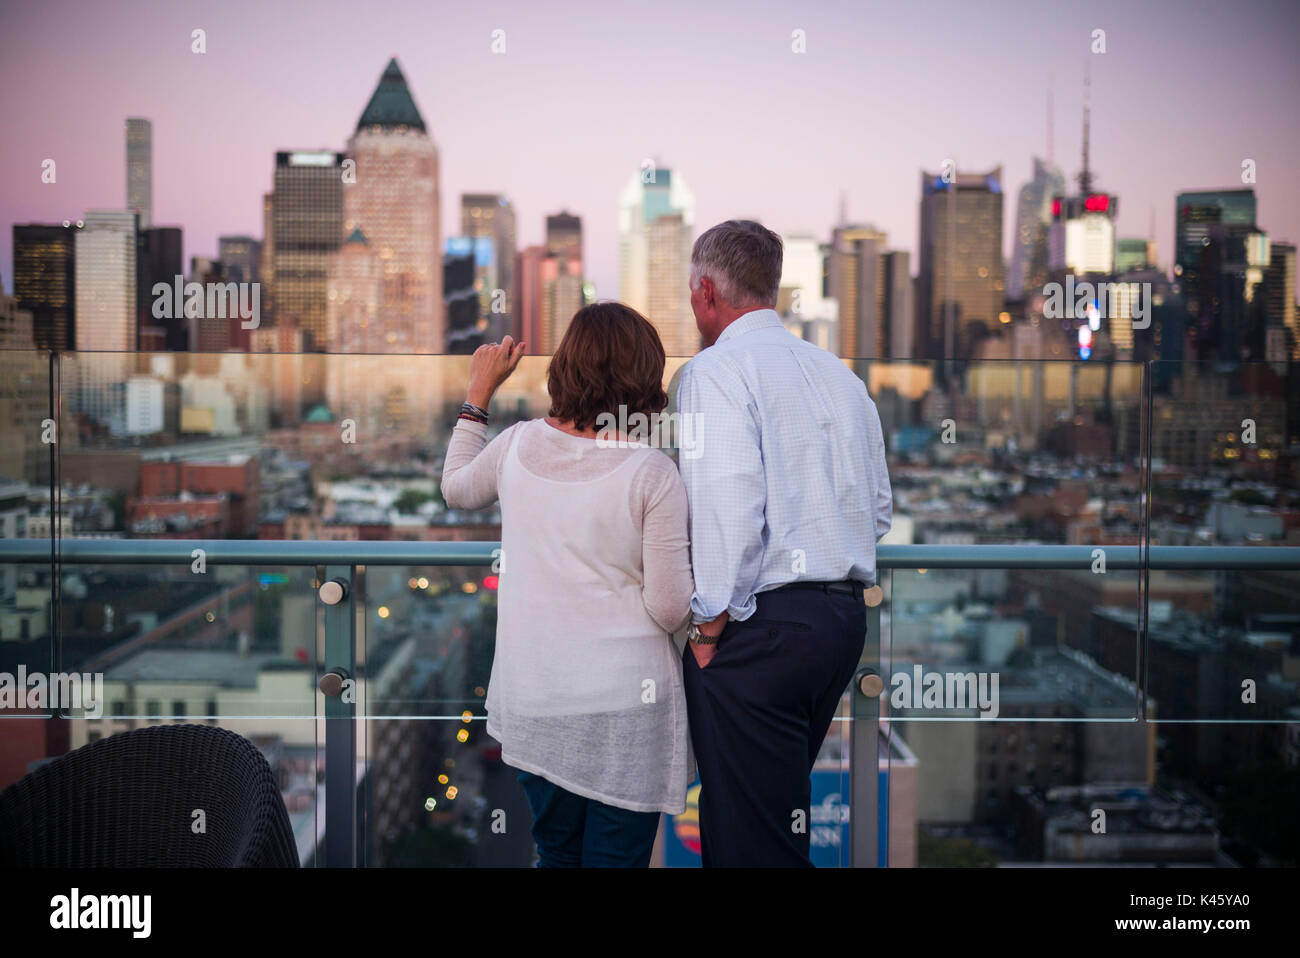 USA, New York, New York City, Mid-Town Manhattan, rooftop bar, dusk - Stock Image